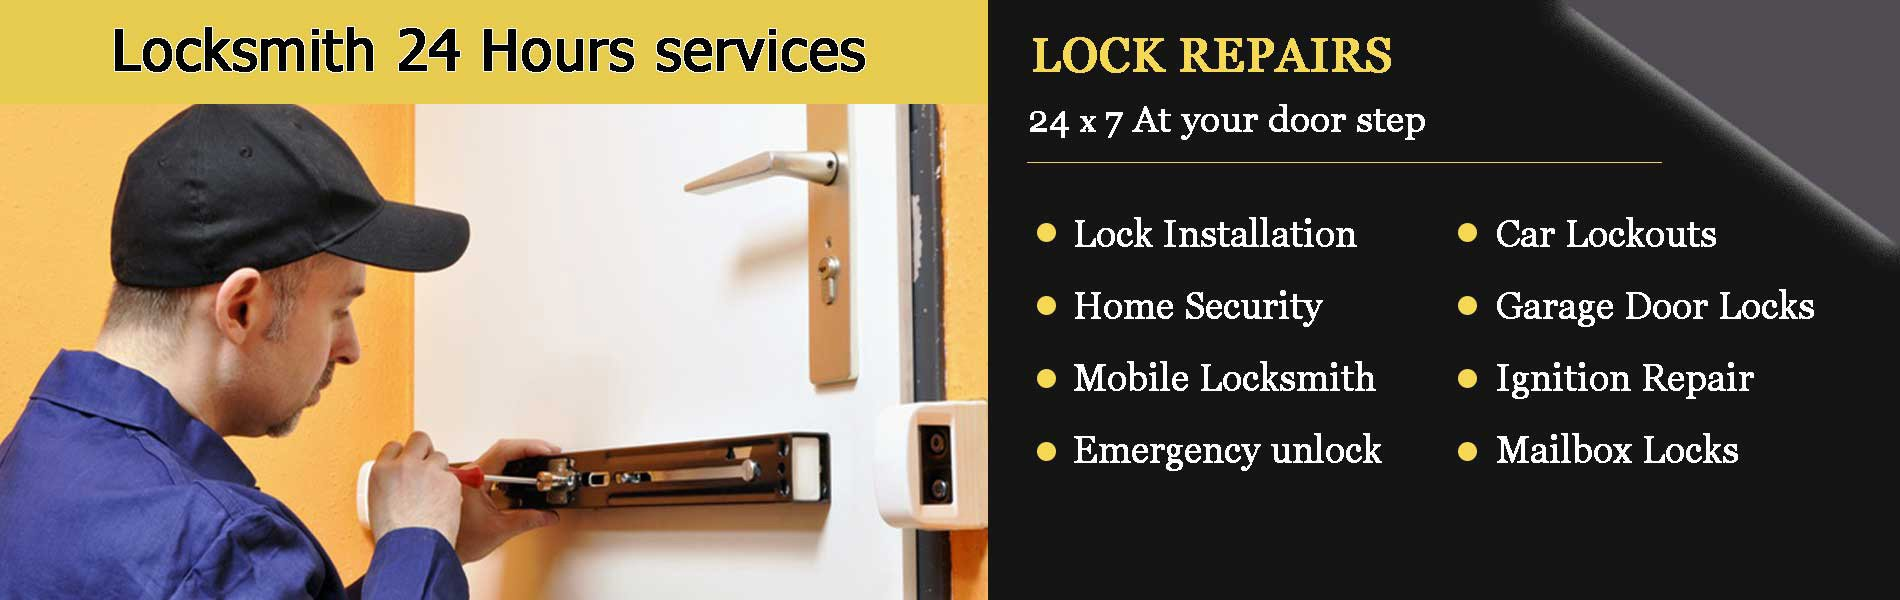 City Locksmith Store Fort Collins, CO 303-928-2640